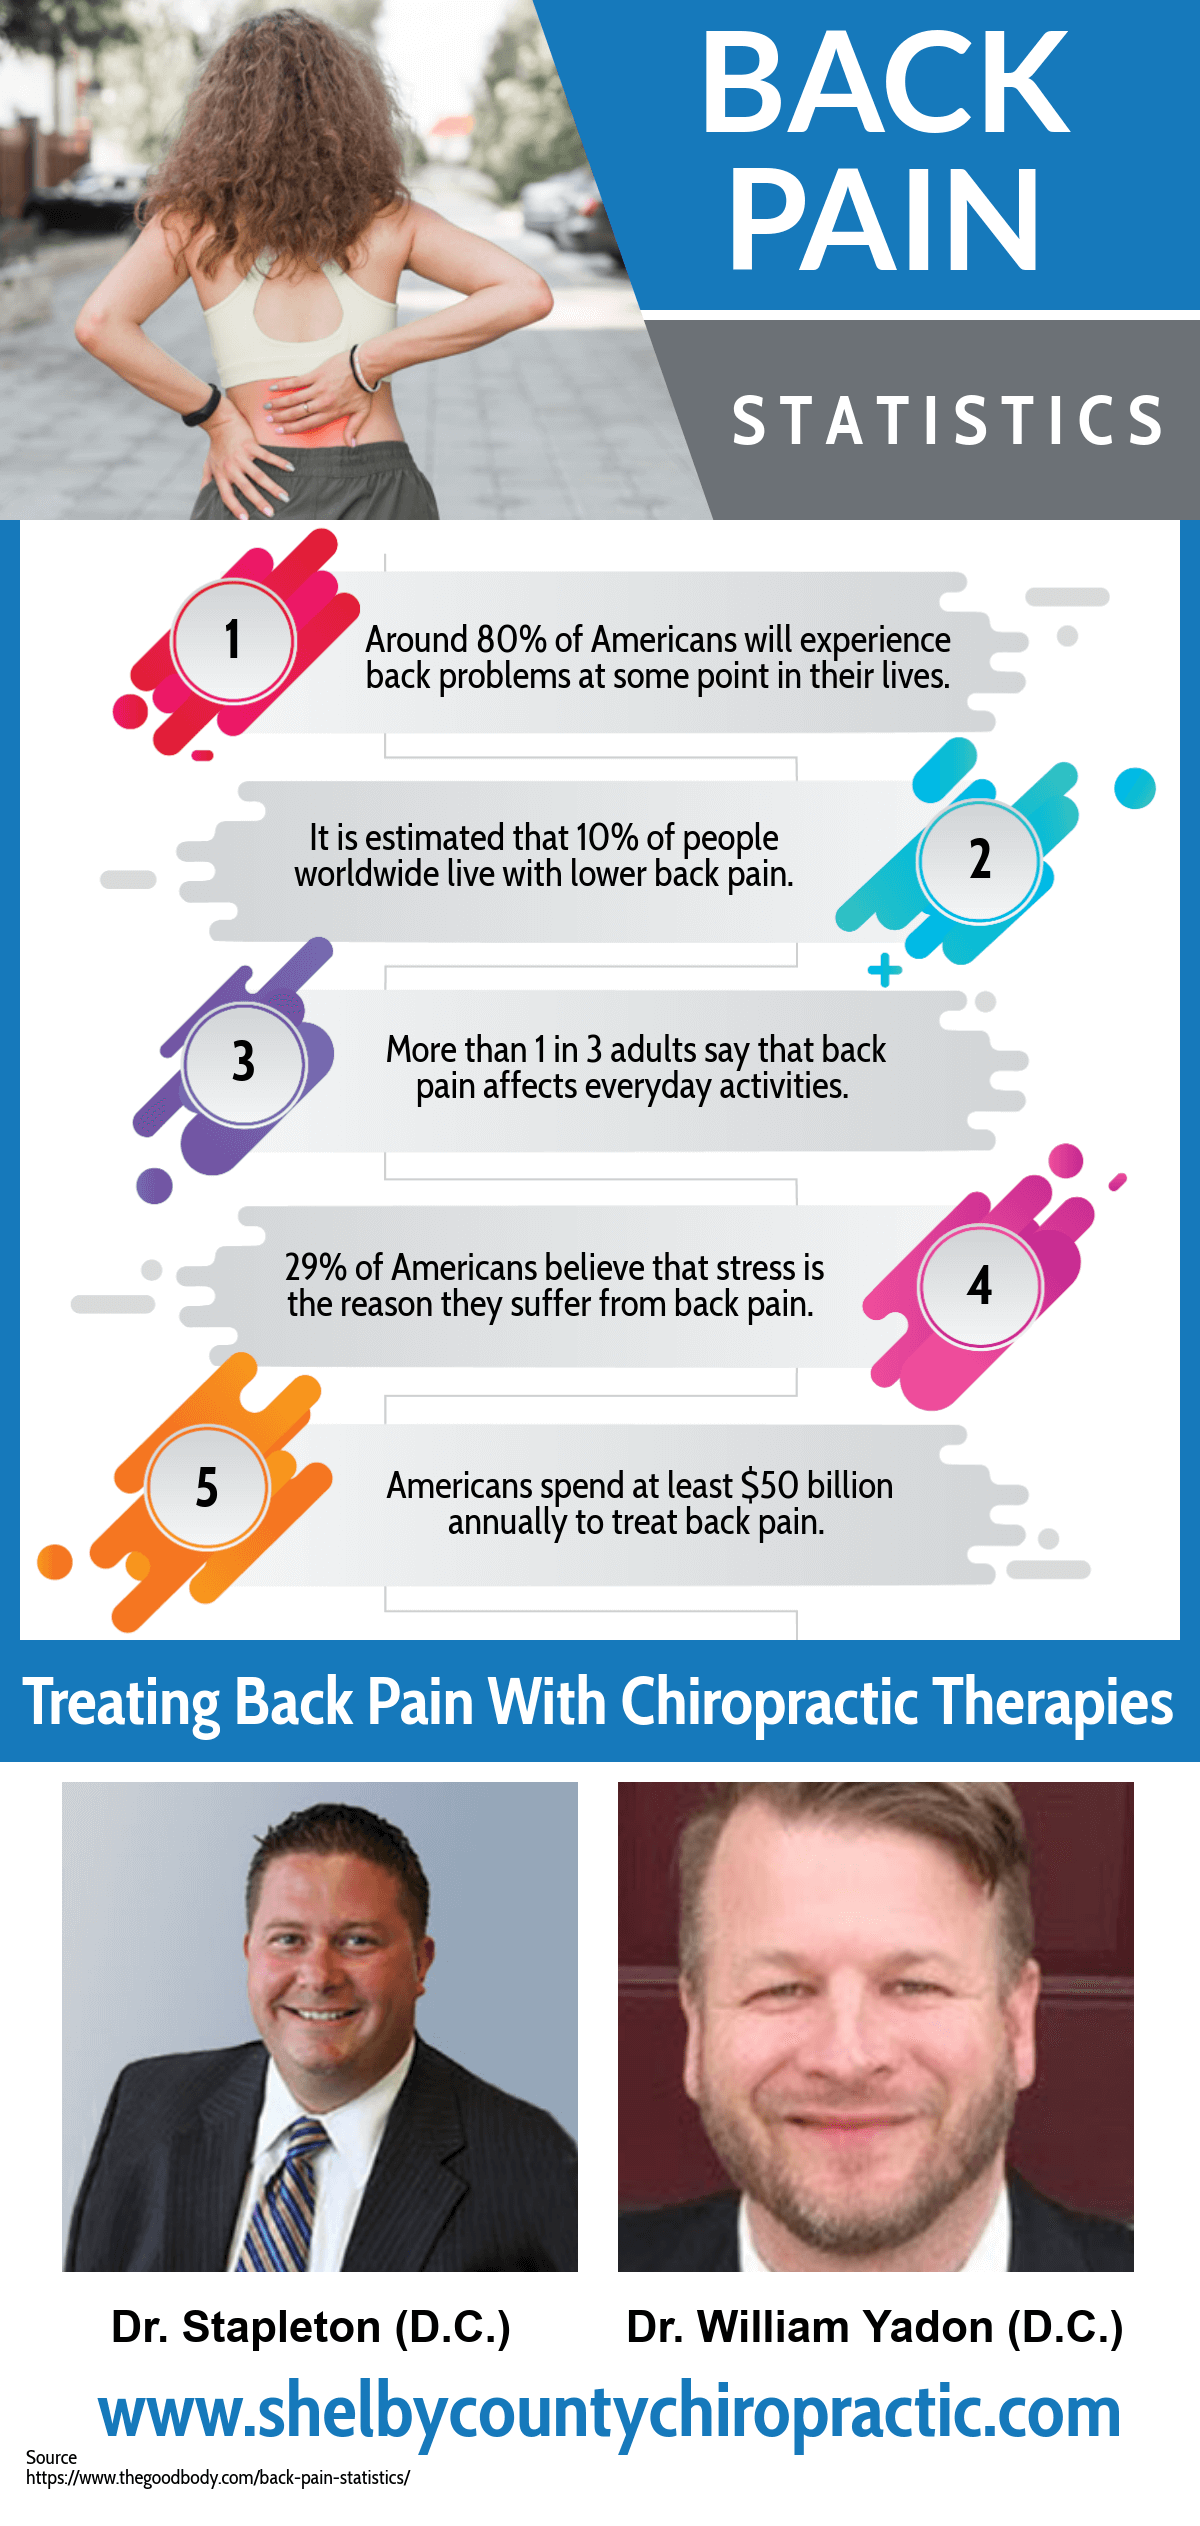 Backpain Statistics